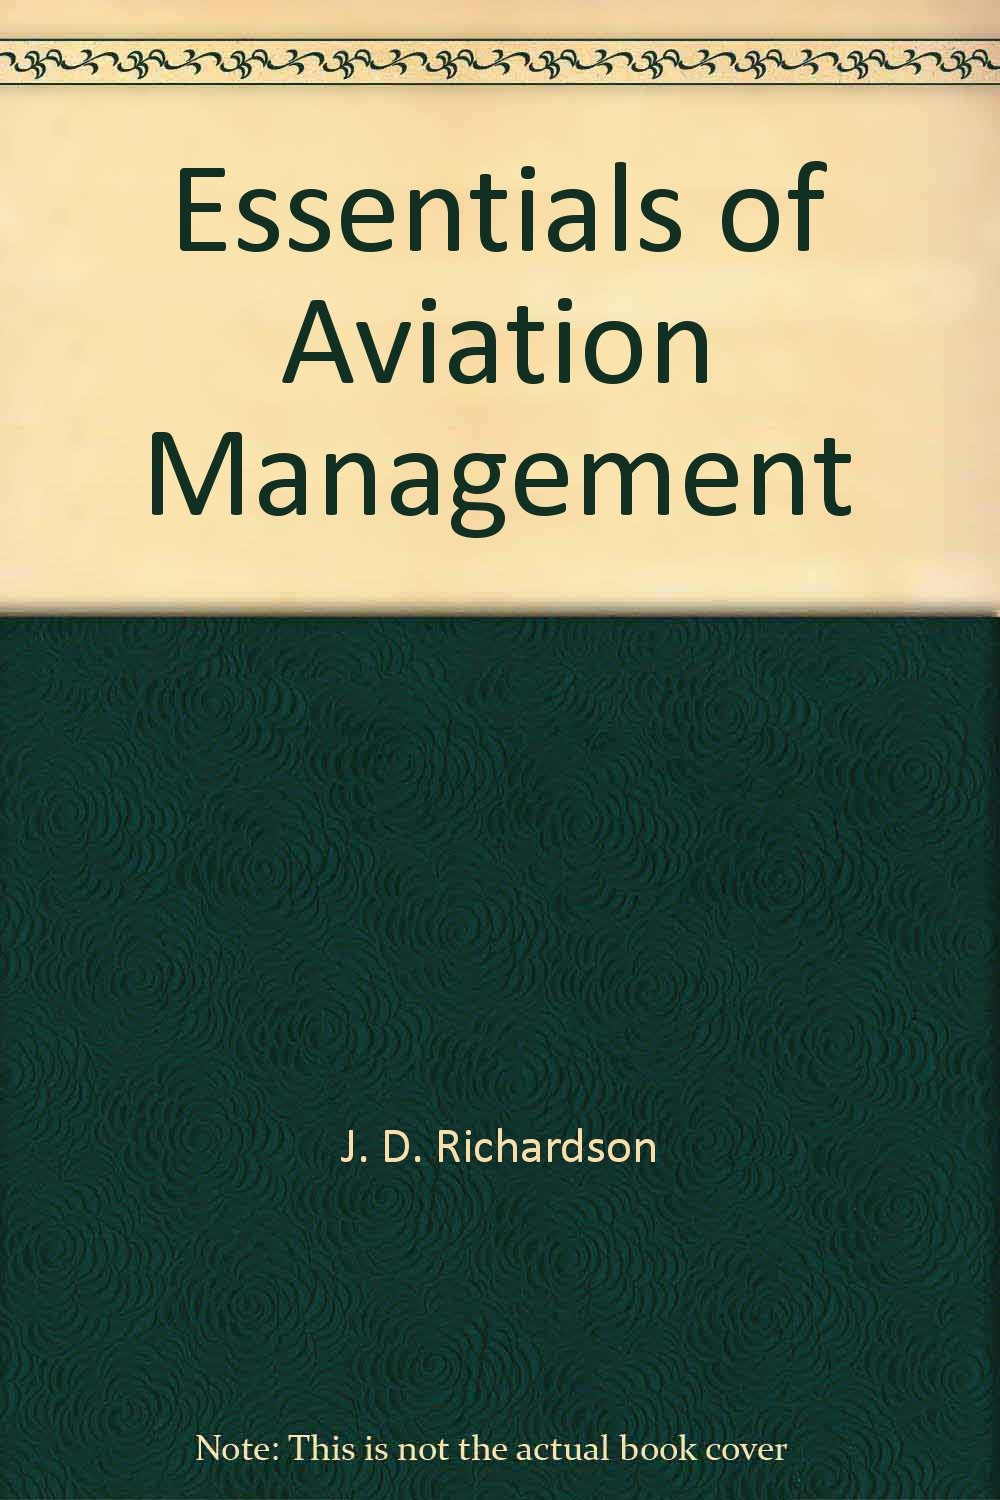 Essentials of aviation management (Aviation management series)